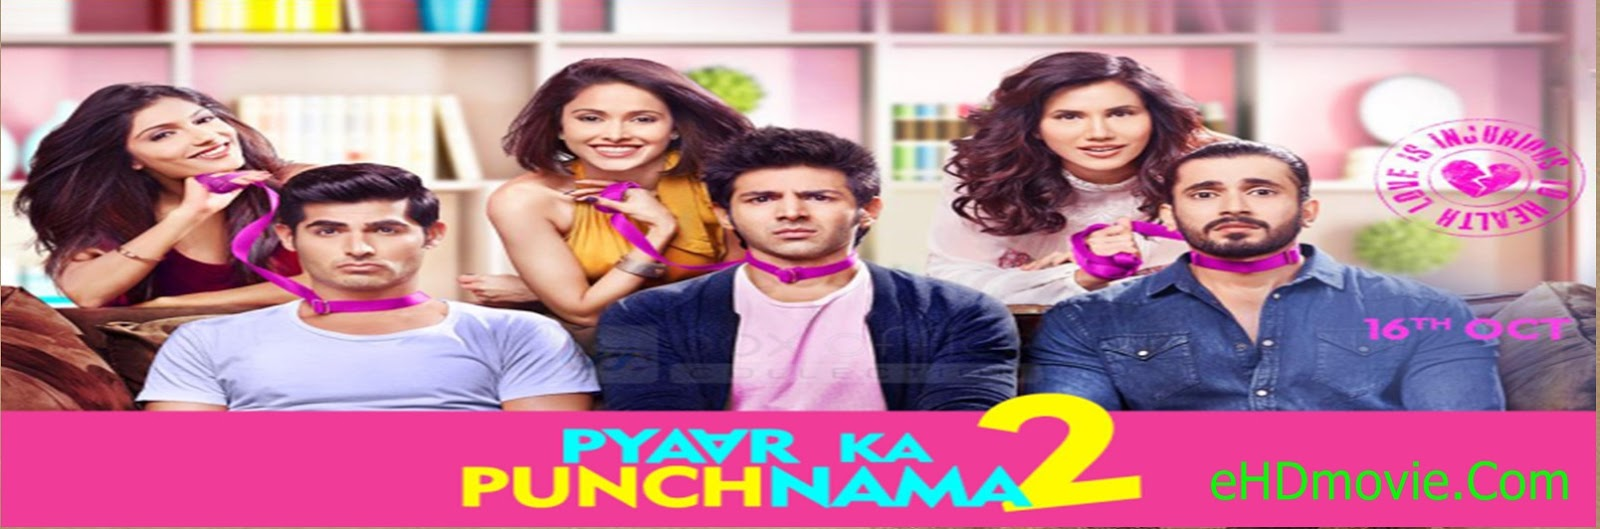 Pyaar Ka Punchnama 2 2015 Full Movie Hindi 720p - HEVC - 480p ORG BRRip 400MB - 600MB - 1GB ESubs Free Download